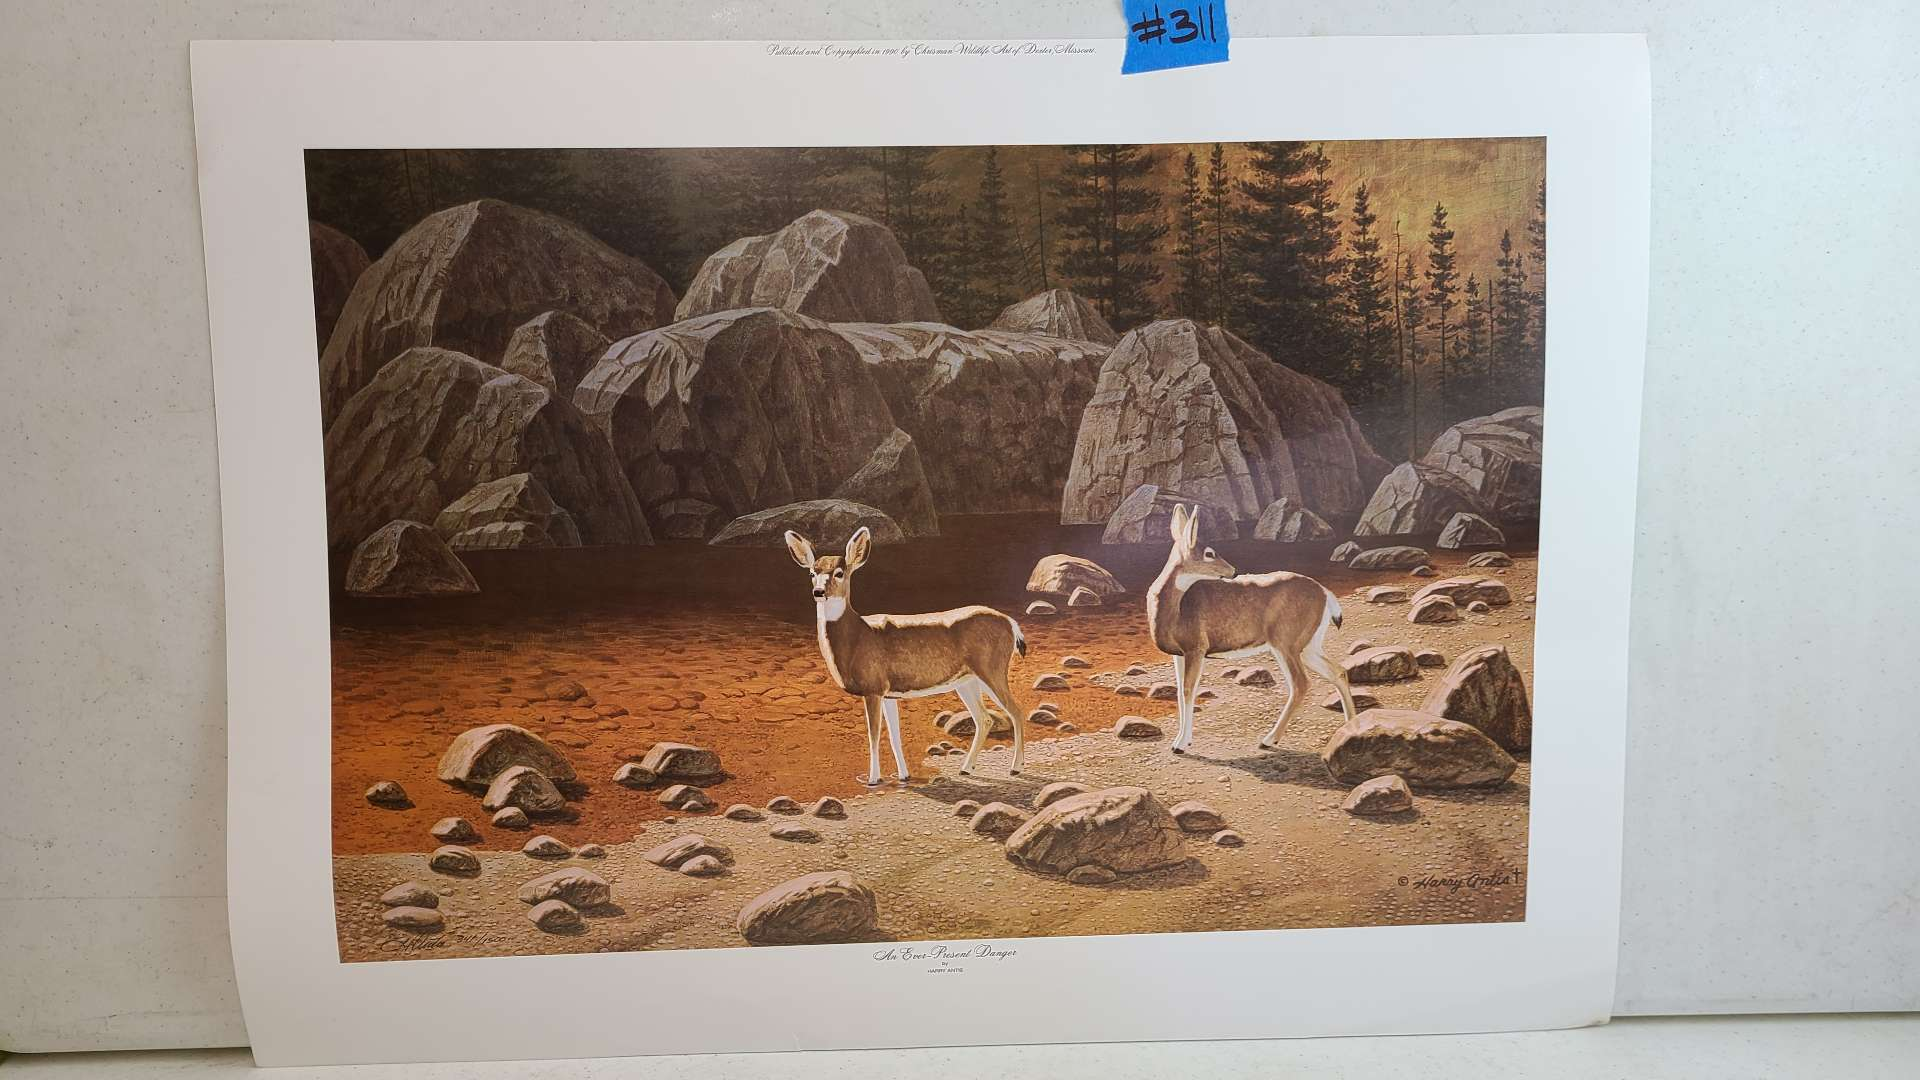 Lot # 311 Lithograph An Ever Present Danger By Harry Antis